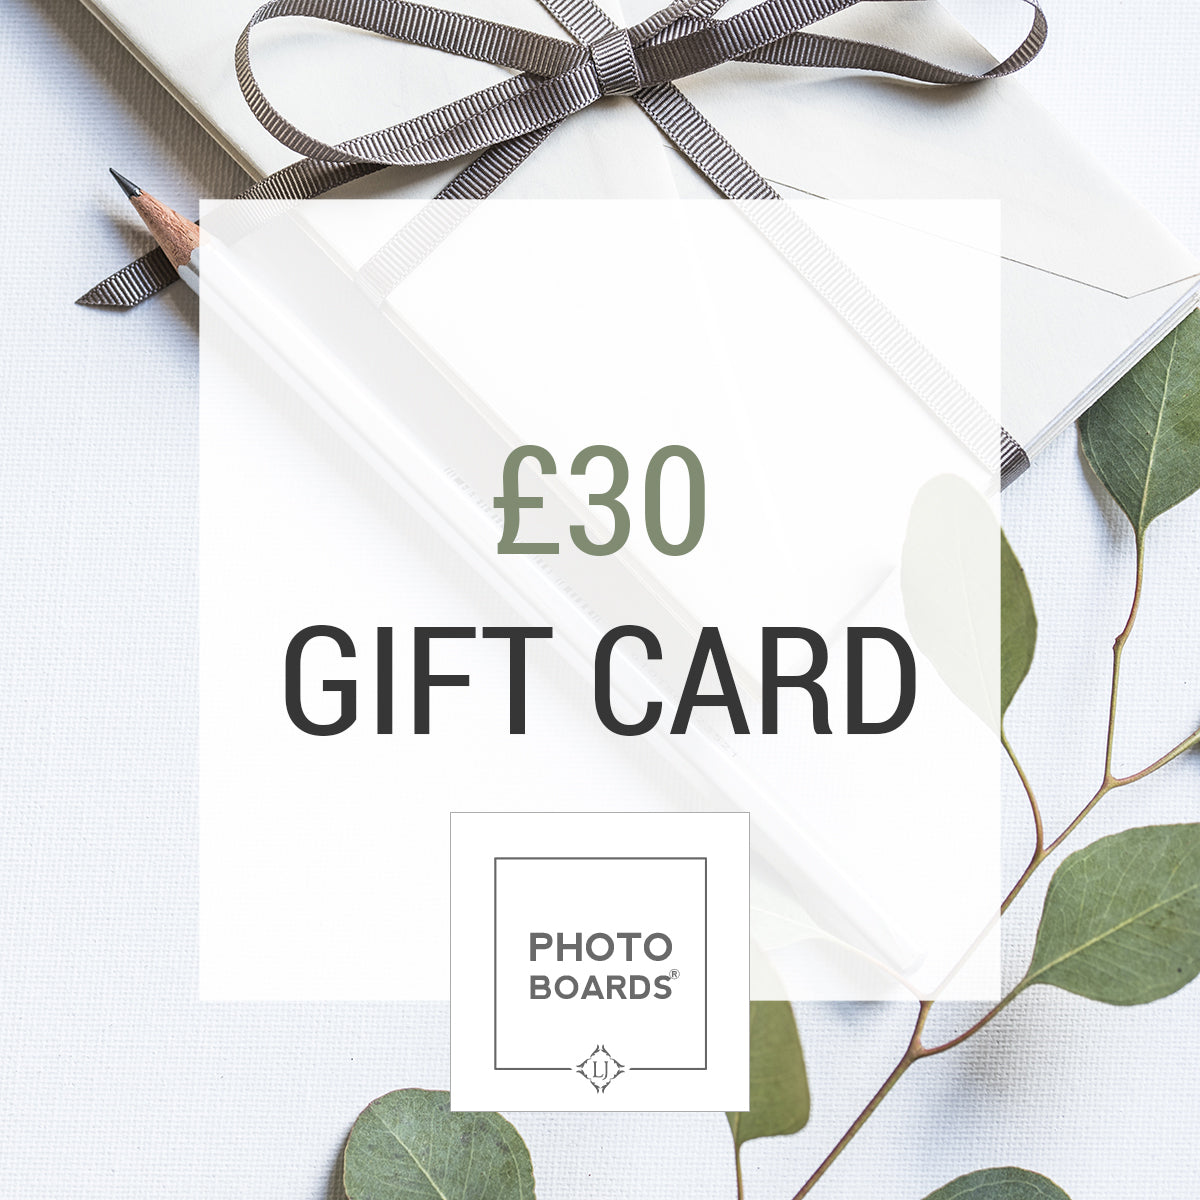 £30 Gift Card